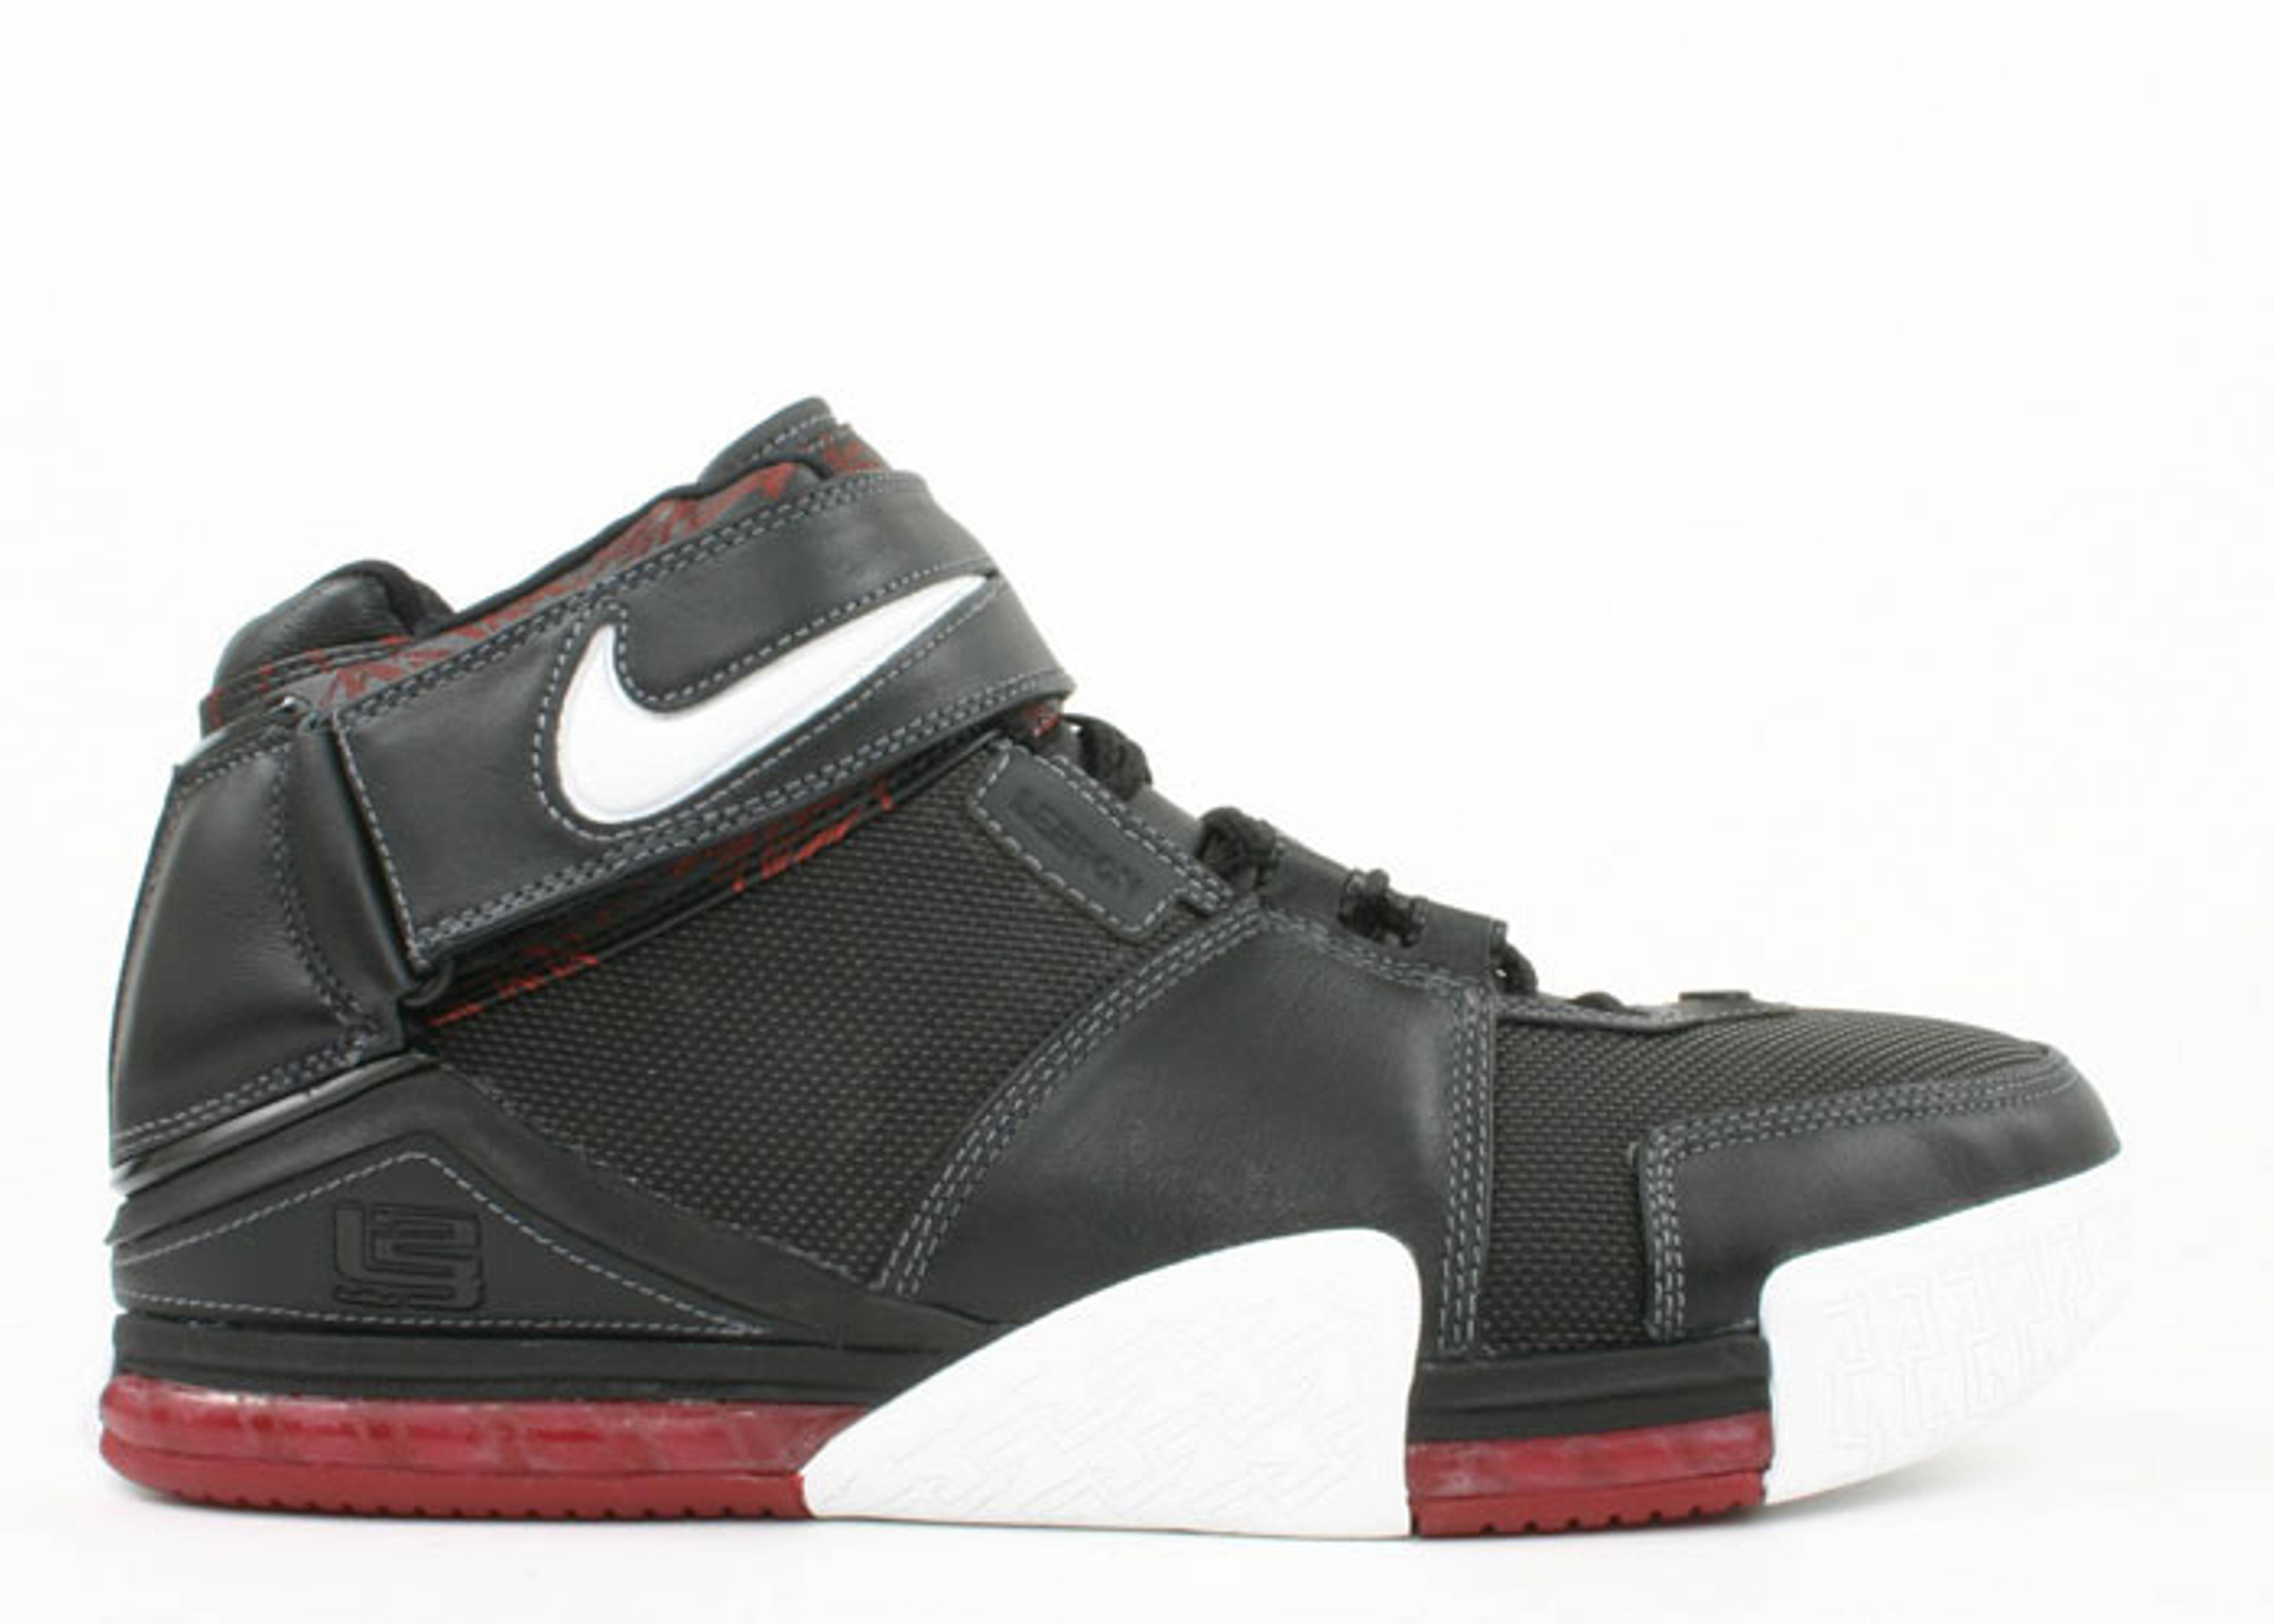 new style 883cf 99c6e ... marshall faulk 28 8211 player exclusive 87e69 3bef9 where to buy nike  zoom lebron 2 309378 012 12059 2bad5 official store nike. zoom lebron 2  2bfa8 ...